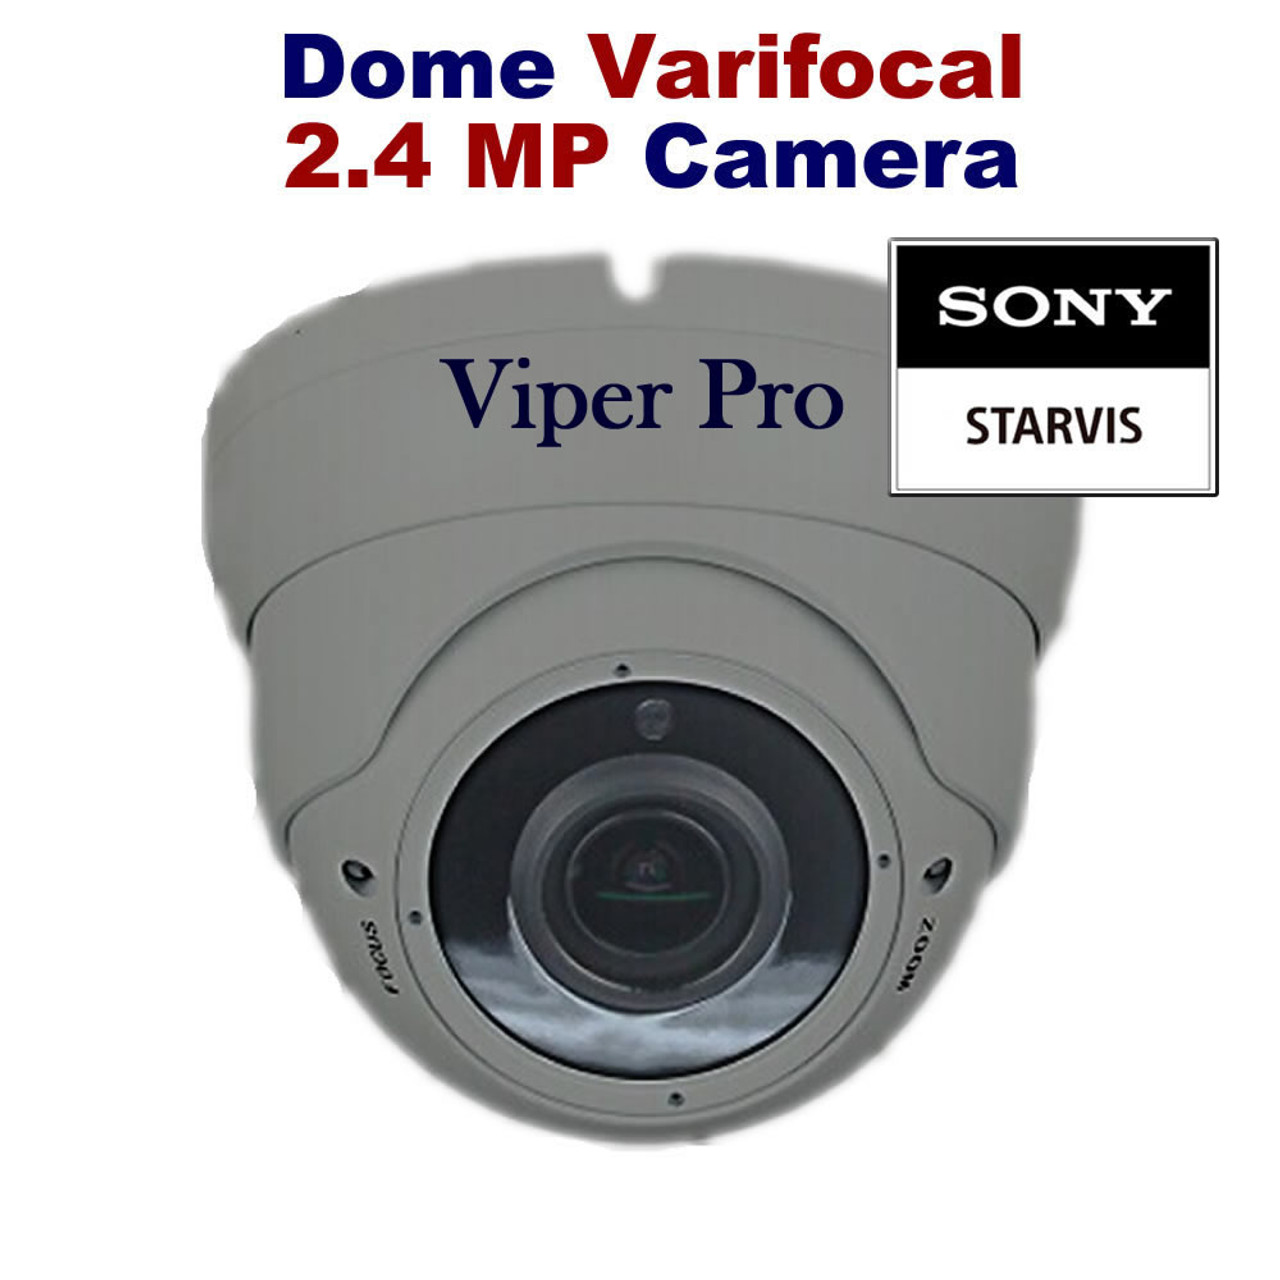 Viper Pro - CCTV Dome Camera 1080p Sony Starvis 2 4MP Varifocal Lens Night  Vision for HD TVI CVI AHD Analogue DVR Outdoor (Grey)